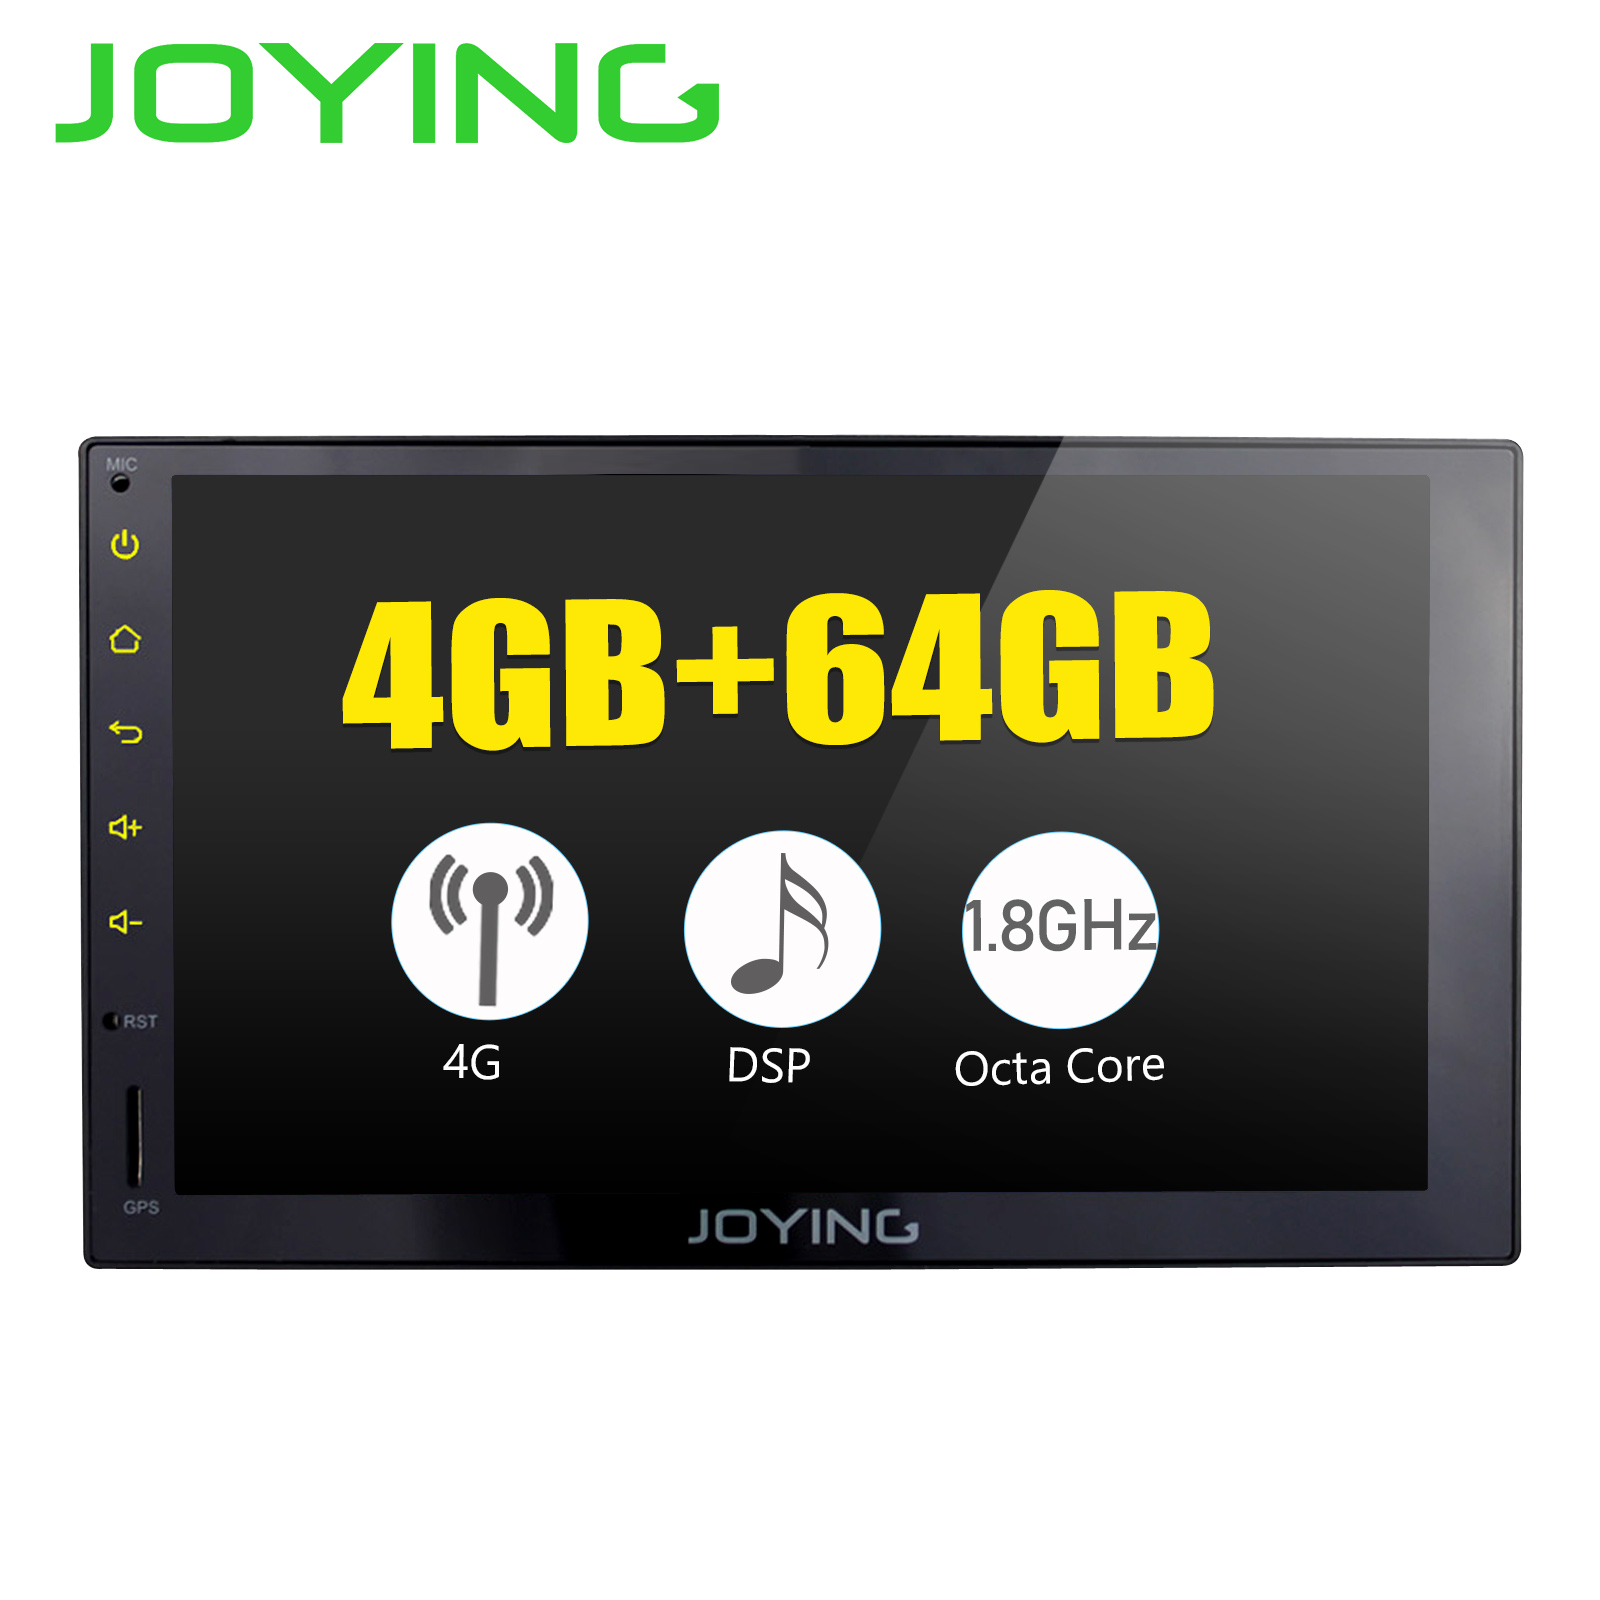 JOYING 4G RAM Android 8.1 2 Din Tape recorder Stereo 7 GPS Player Car Radio Octa 8 Core Head unit support carplay DSP 4G ModuleJOYING 4G RAM Android 8.1 2 Din Tape recorder Stereo 7 GPS Player Car Radio Octa 8 Core Head unit support carplay DSP 4G Module